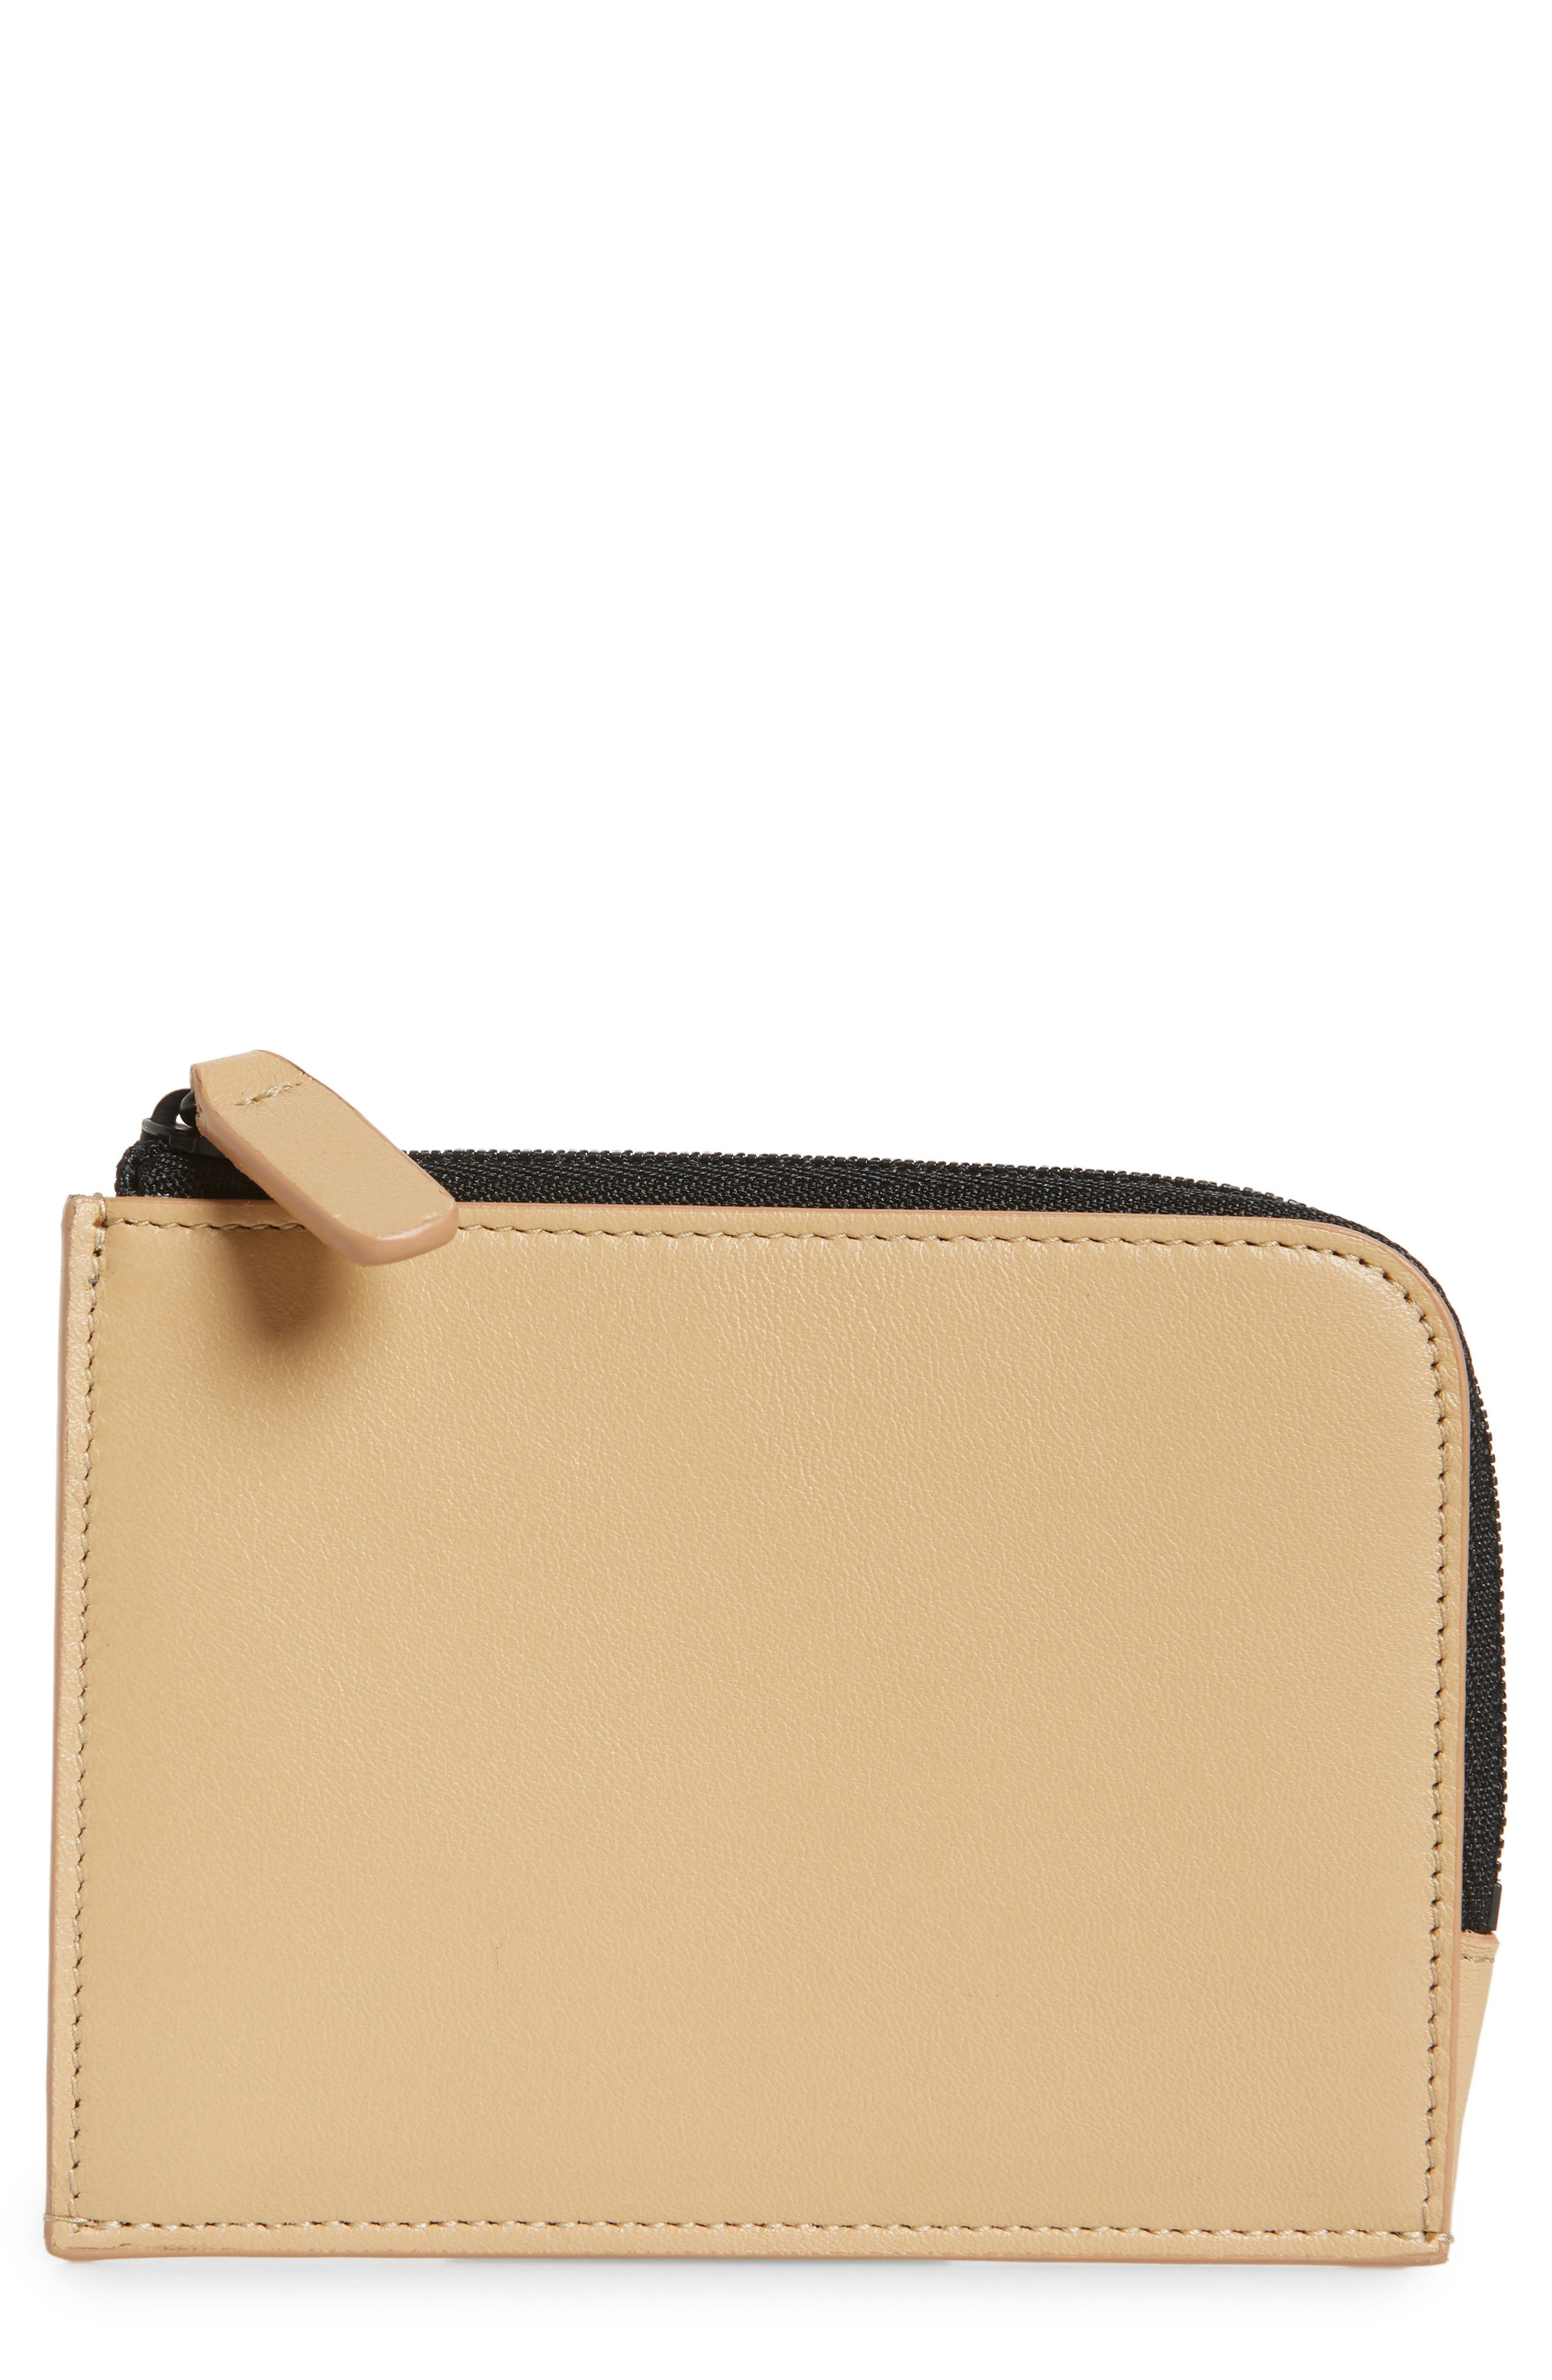 COMMON PROJECTS, Nappa Leather Zip Wallet, Main thumbnail 1, color, TAN